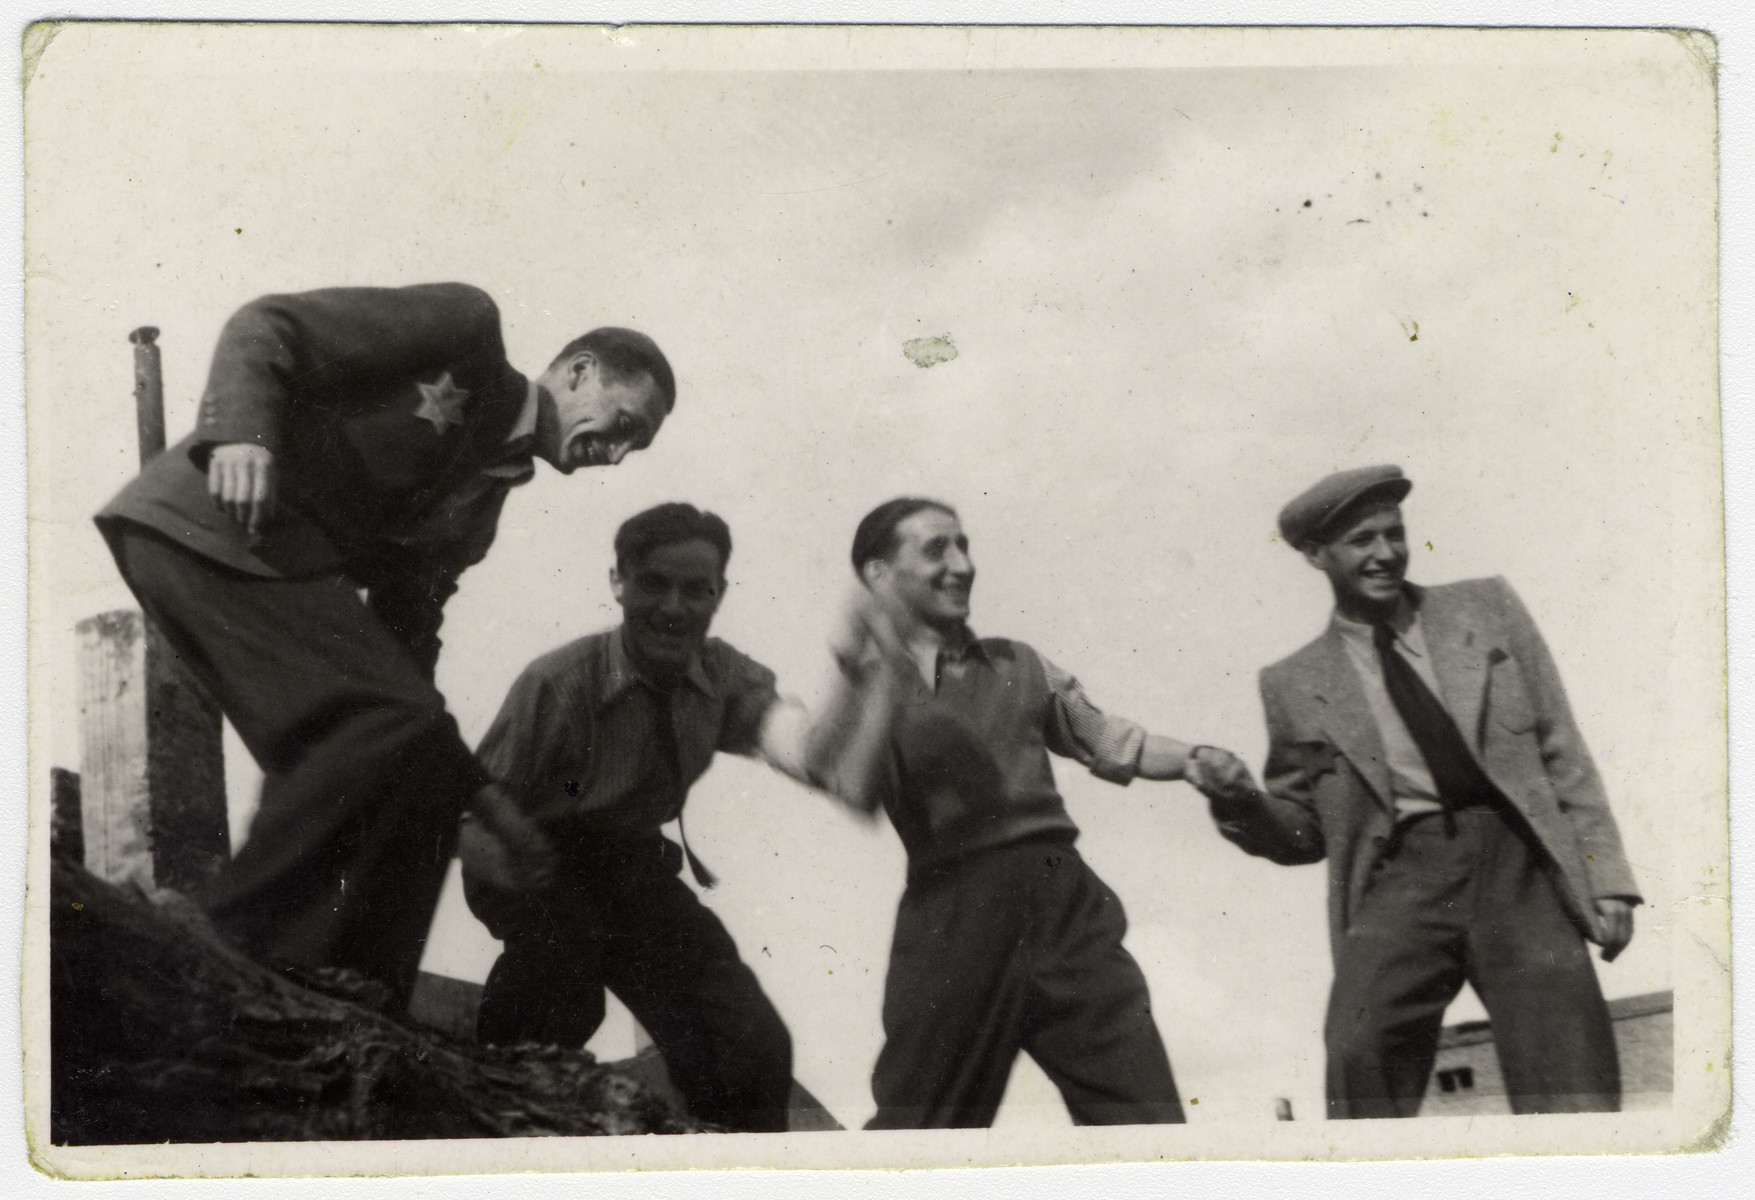 Four Jewish young men hold hands in the Lodz ghetto.   Second and third from the left are Pinchas Szwarc (later Shaar) and his brother Josef Szwarc (later Schwartz).